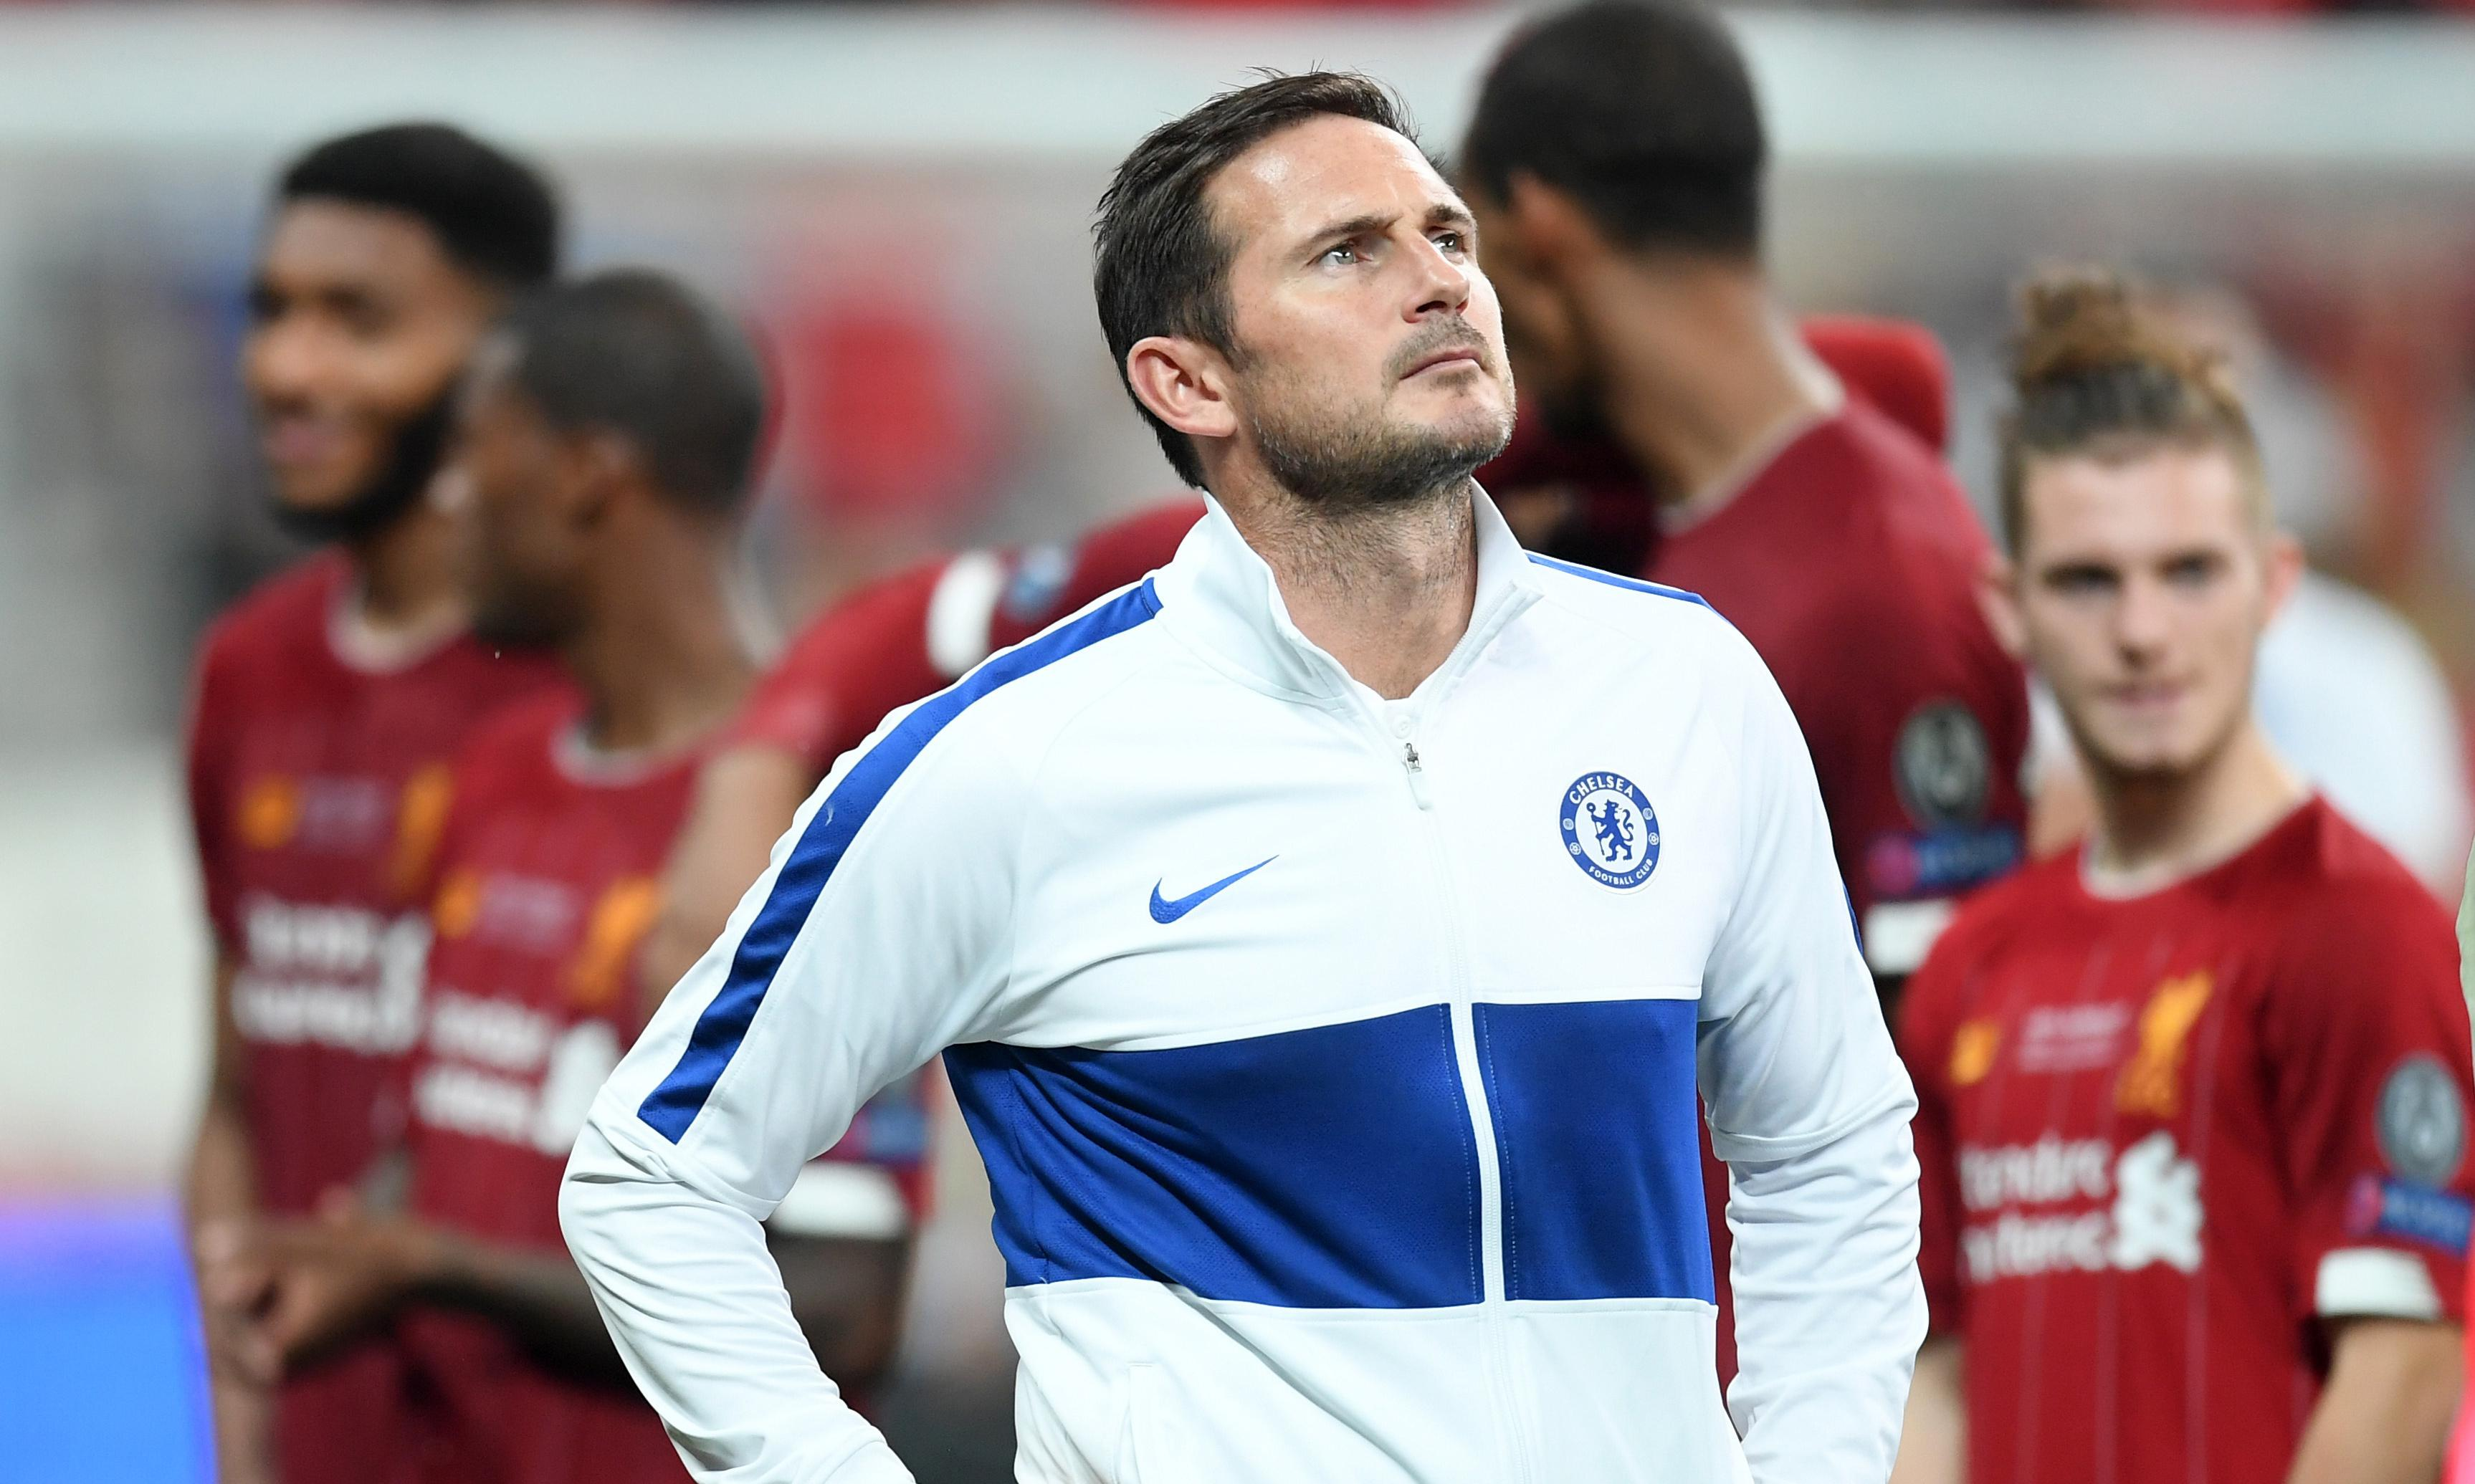 Shortcomings of Lampard the manager echo those of Lampard the player